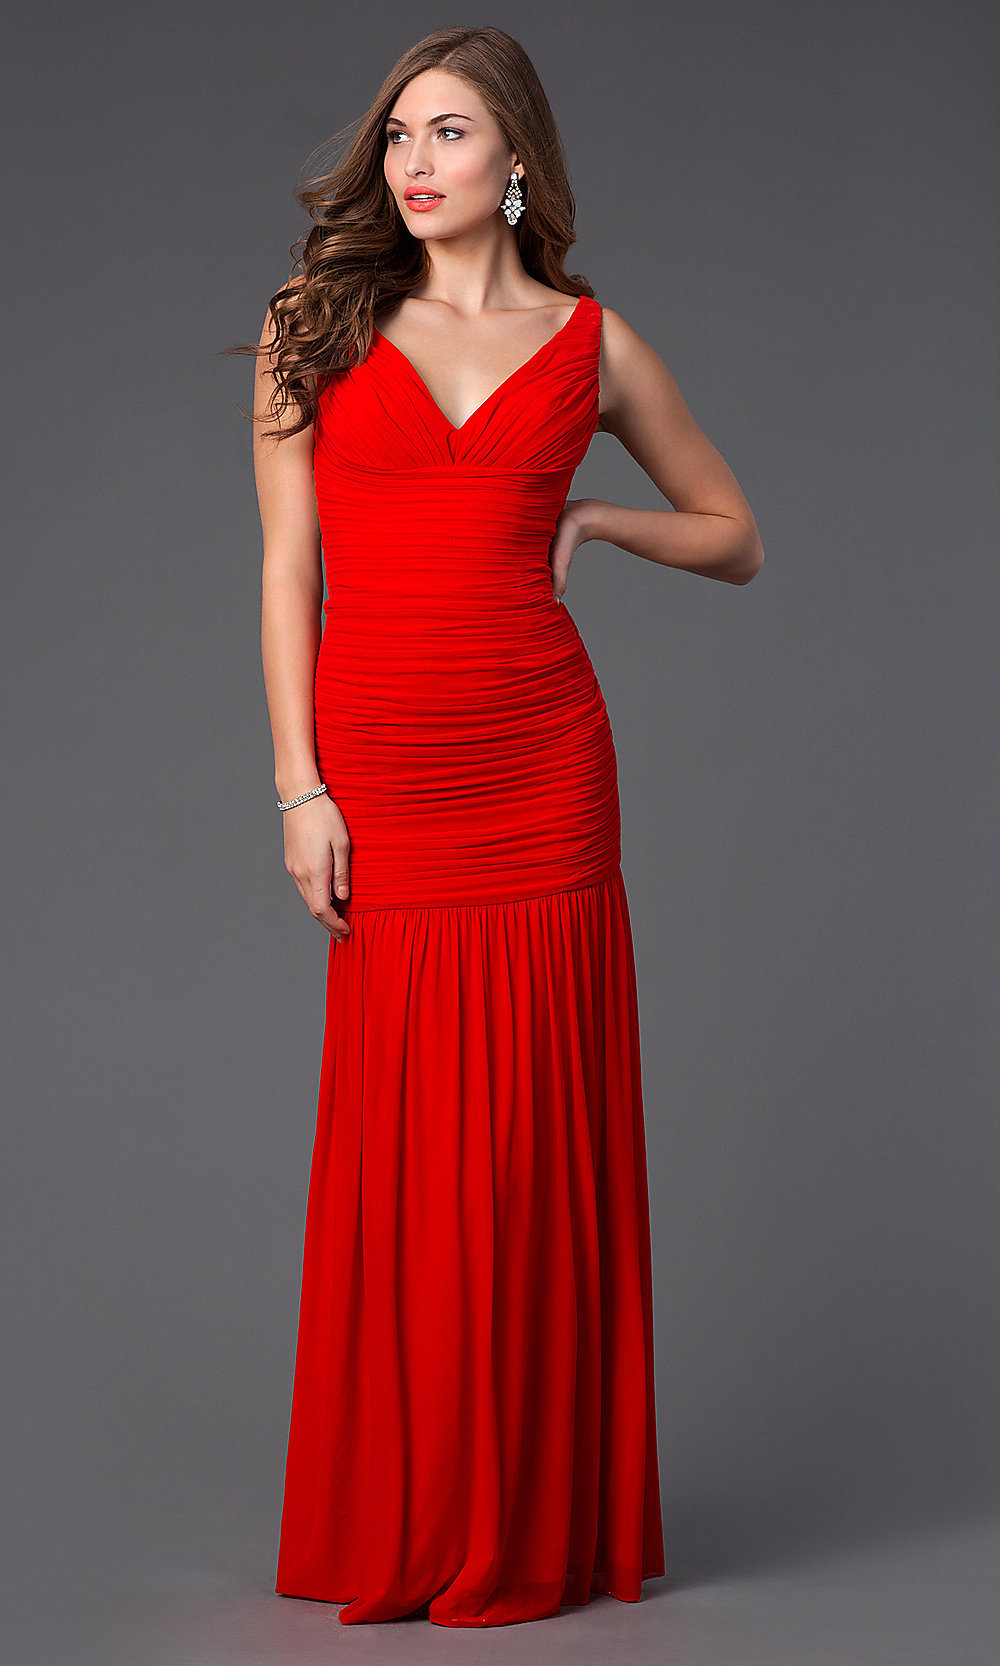 Red Ruched Illusion-Back Prom Dress - PromGirl